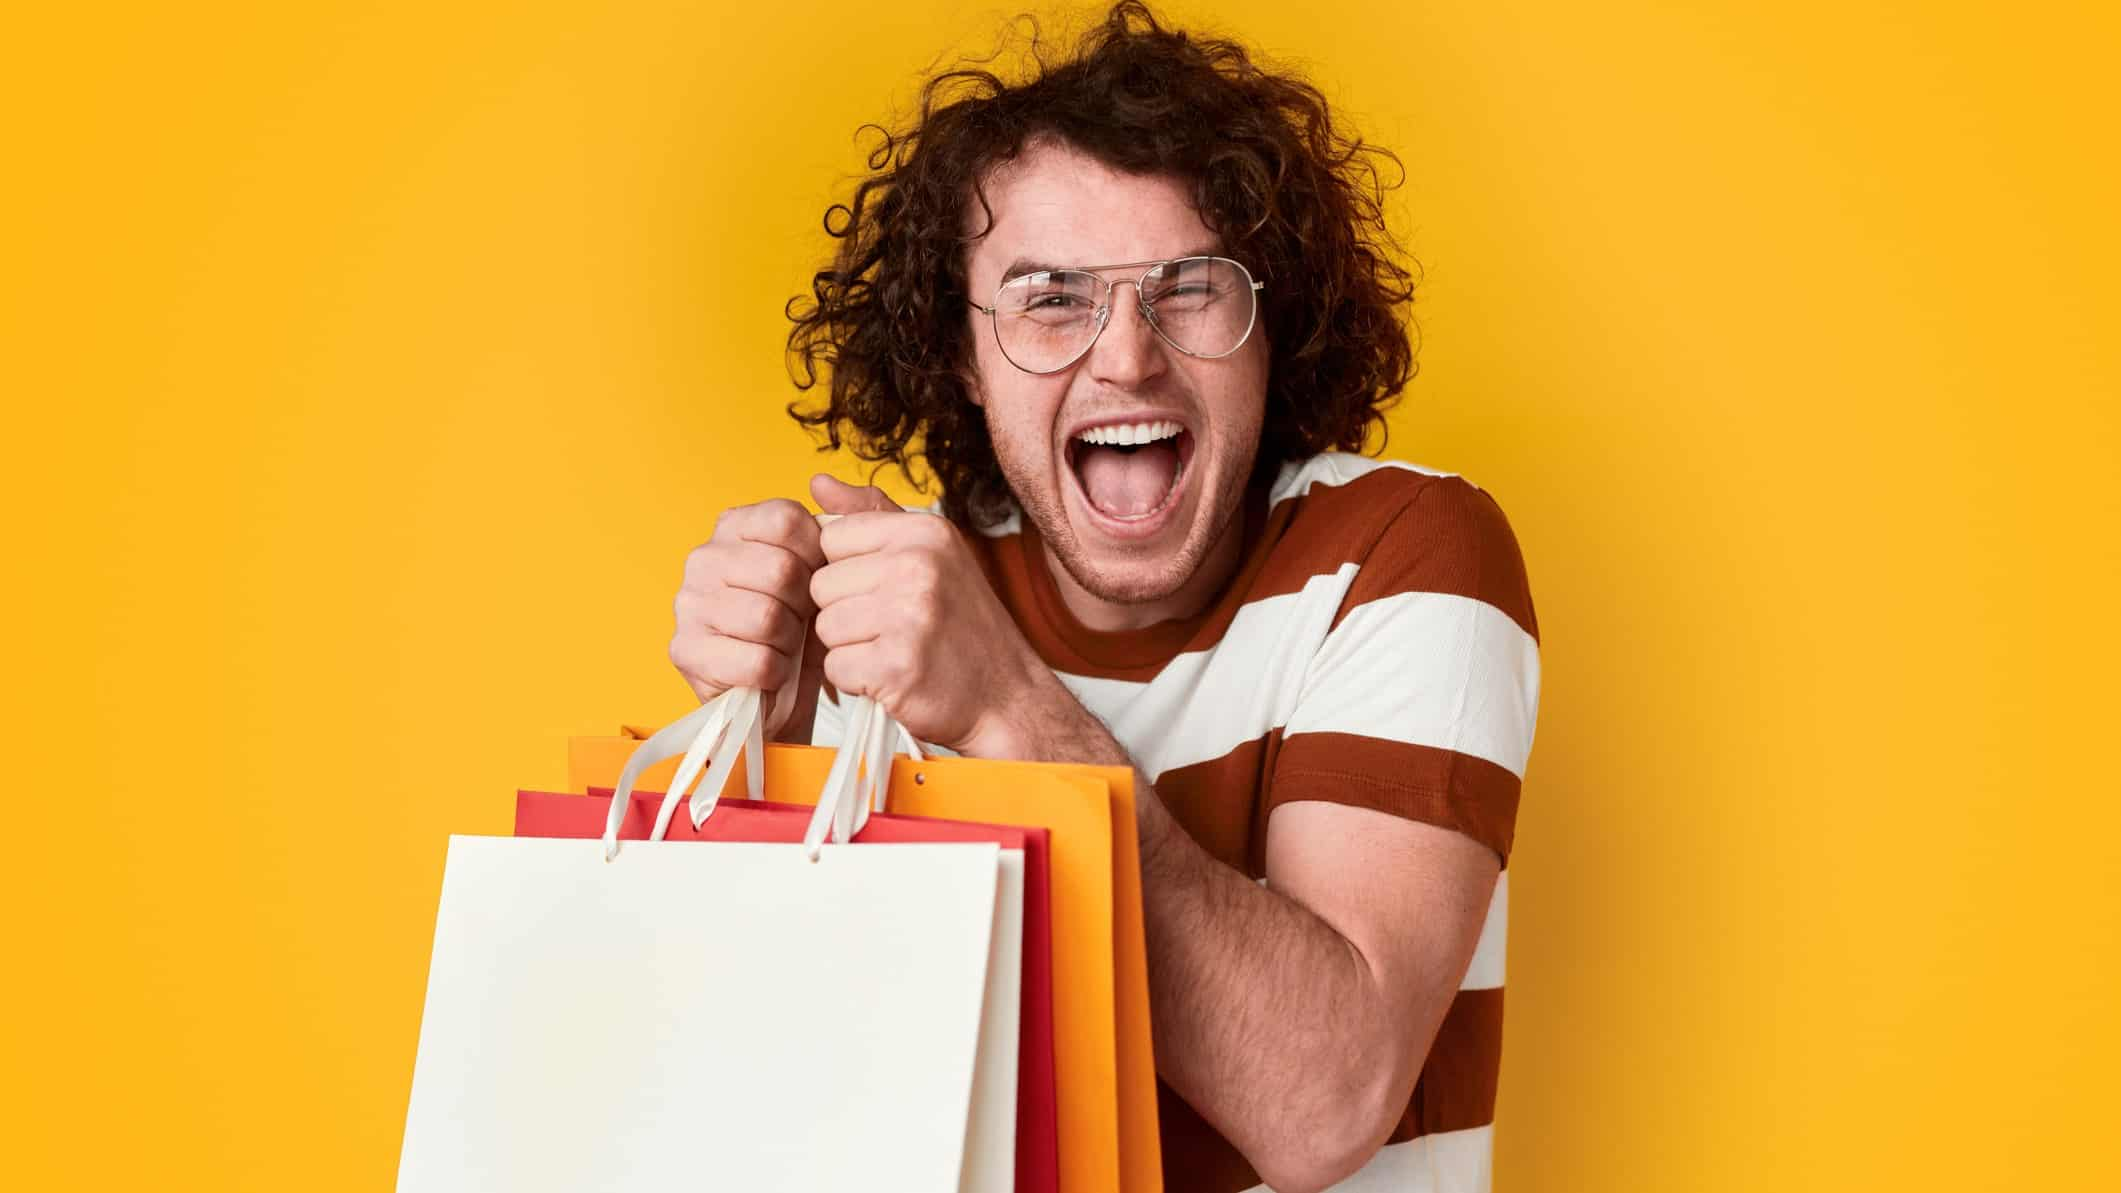 rising retail asx share price represented by excited shopper holding lots of bags best buy